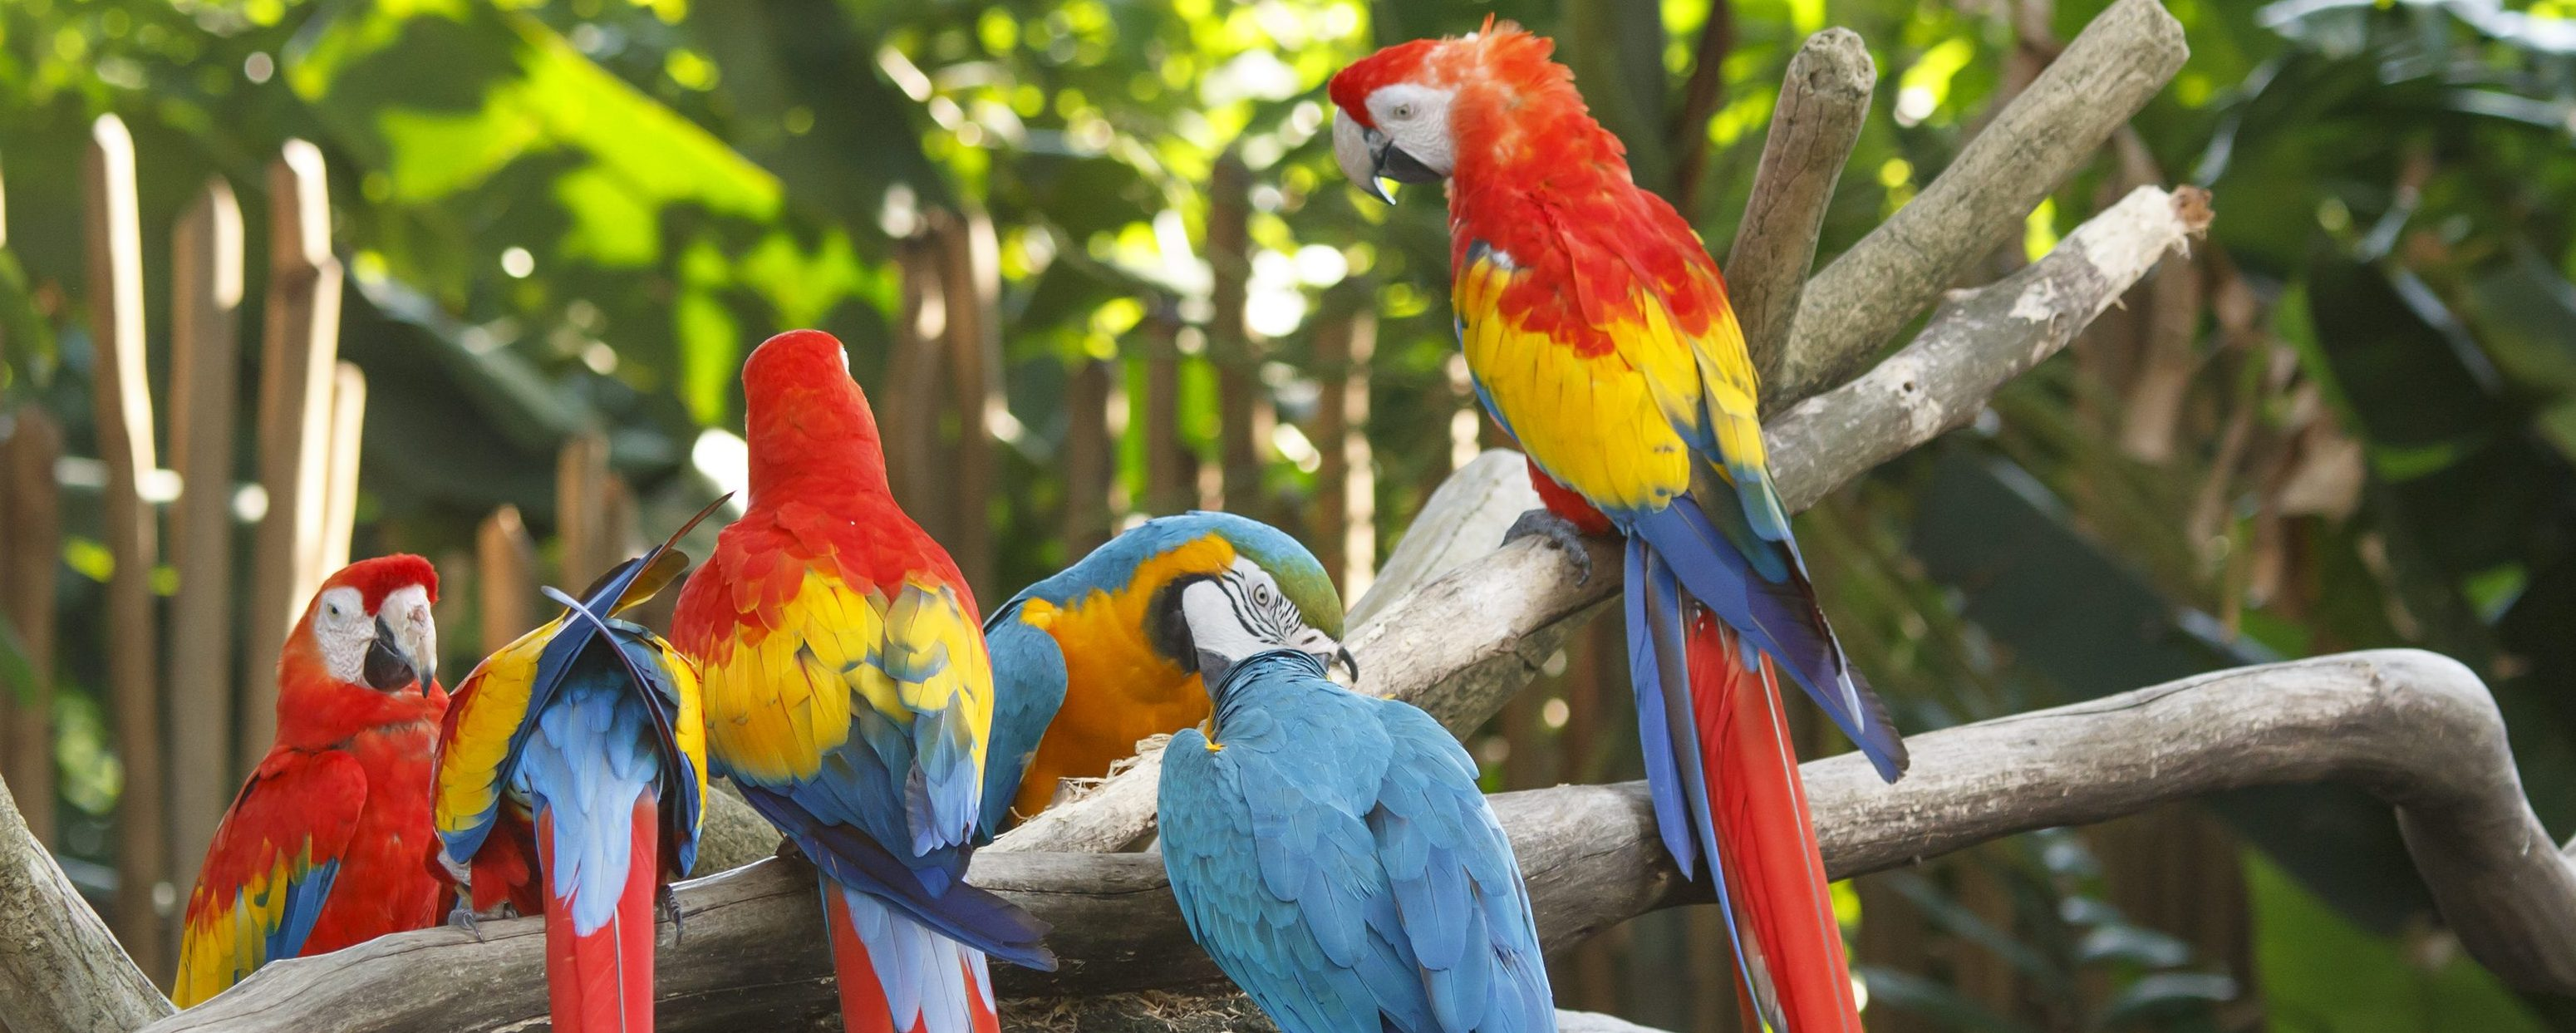 A few macaws sitting on a branch in the bird santuary at Iguassu.